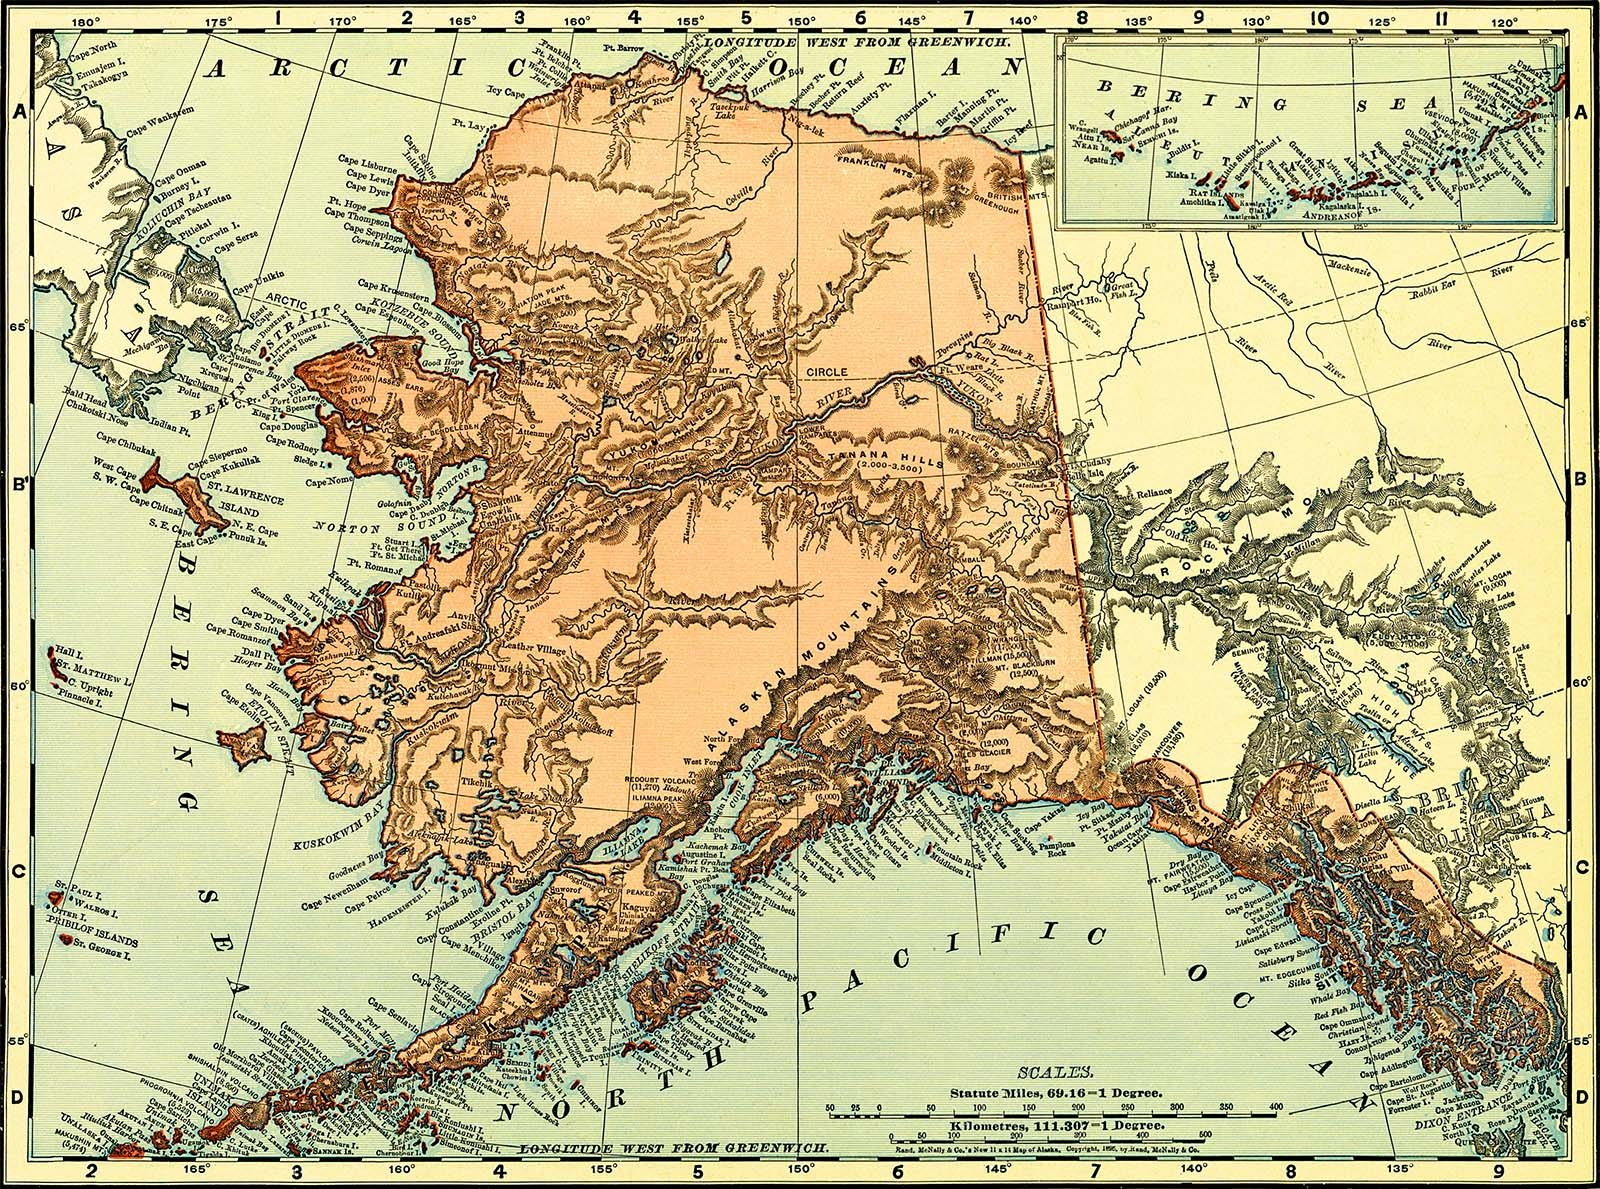 A map of Alaska Territory in 1895. Note the coastal region, with densely identified natural features or settlements, and the relatively blank interior.